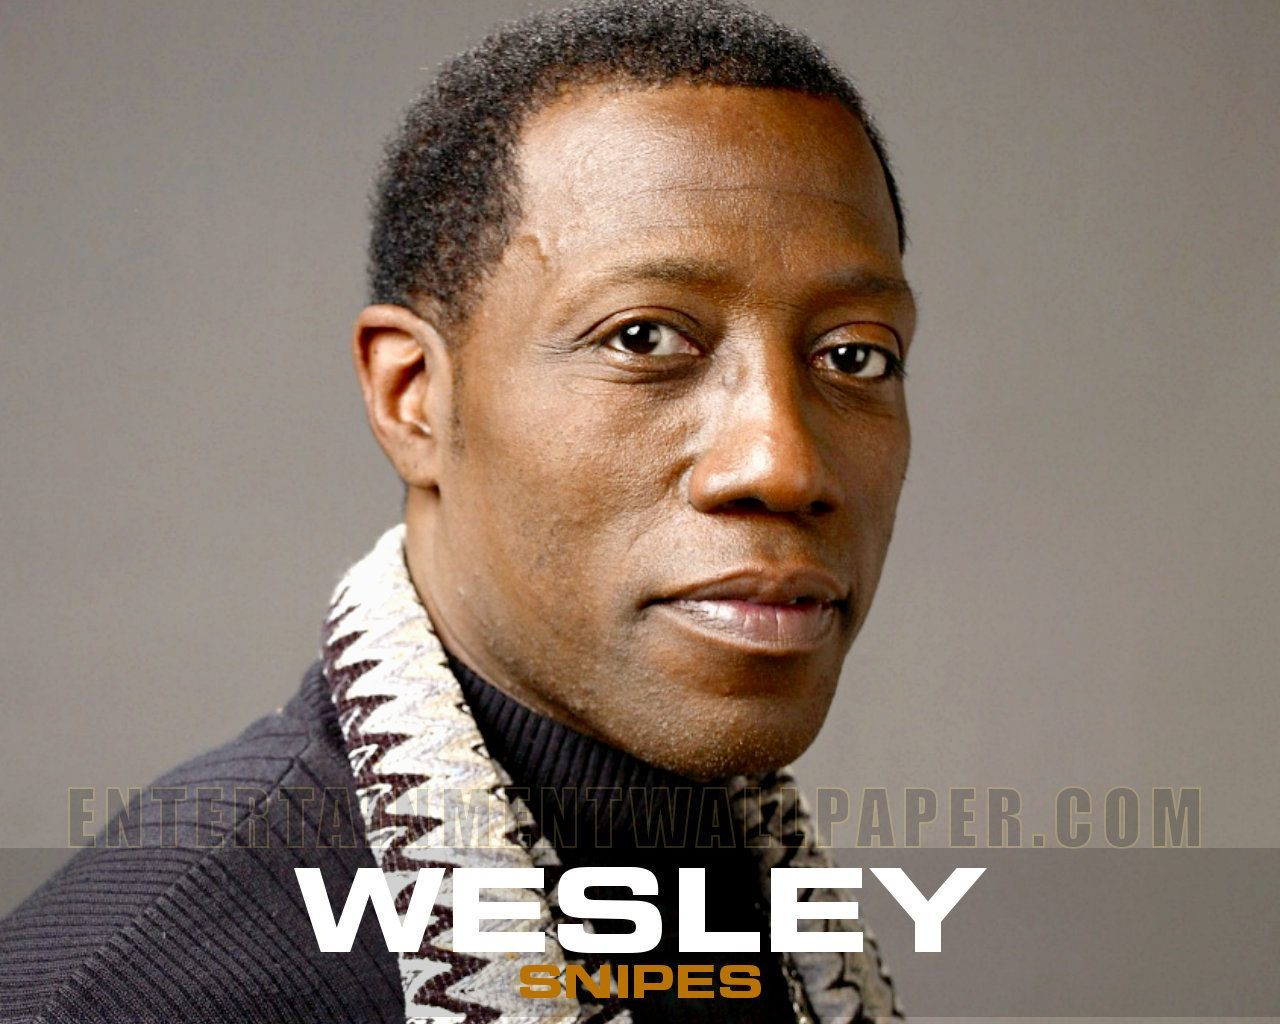 Wesley Snipes Wallpaper - Original size, download now.